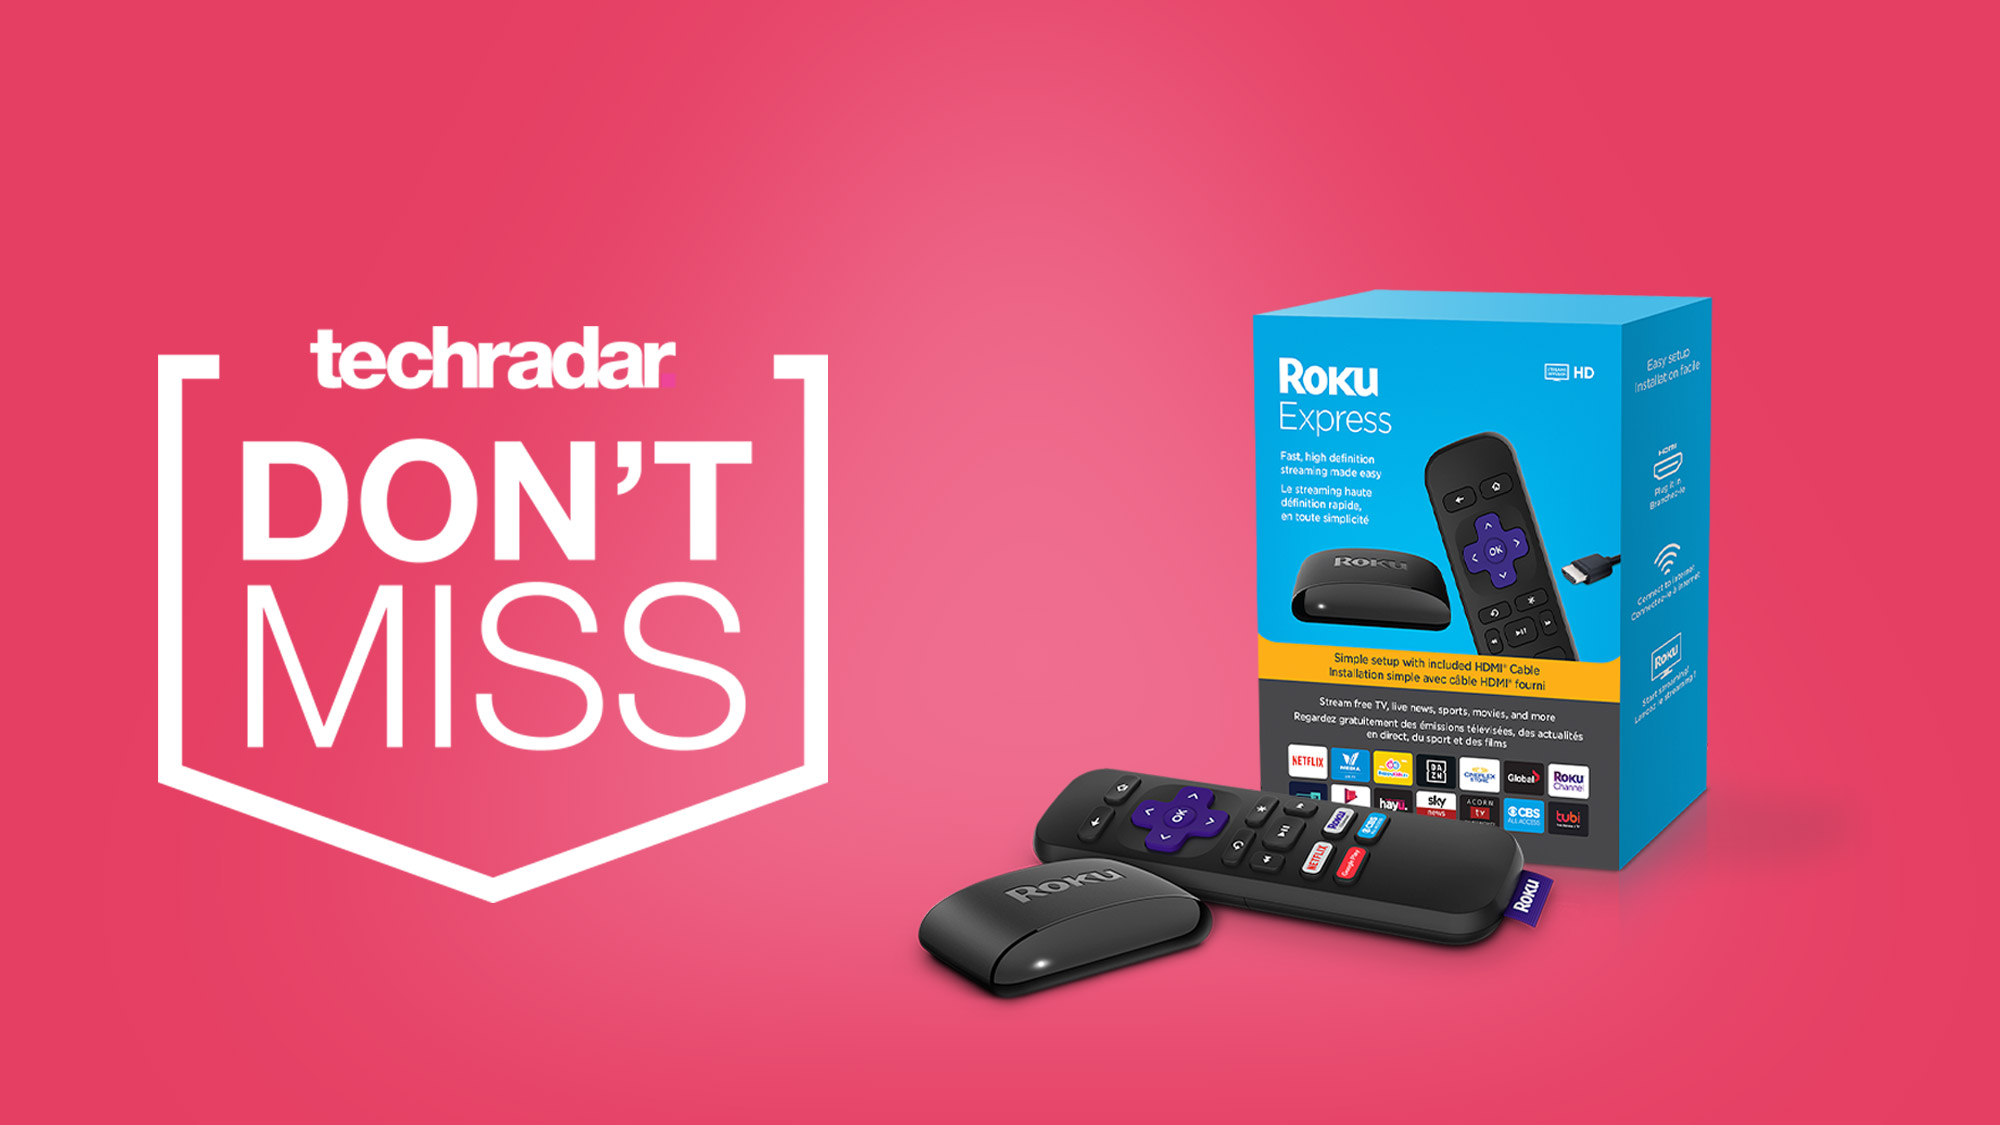 You can get the all-new Roku Express on sale for just $24 at Amazon